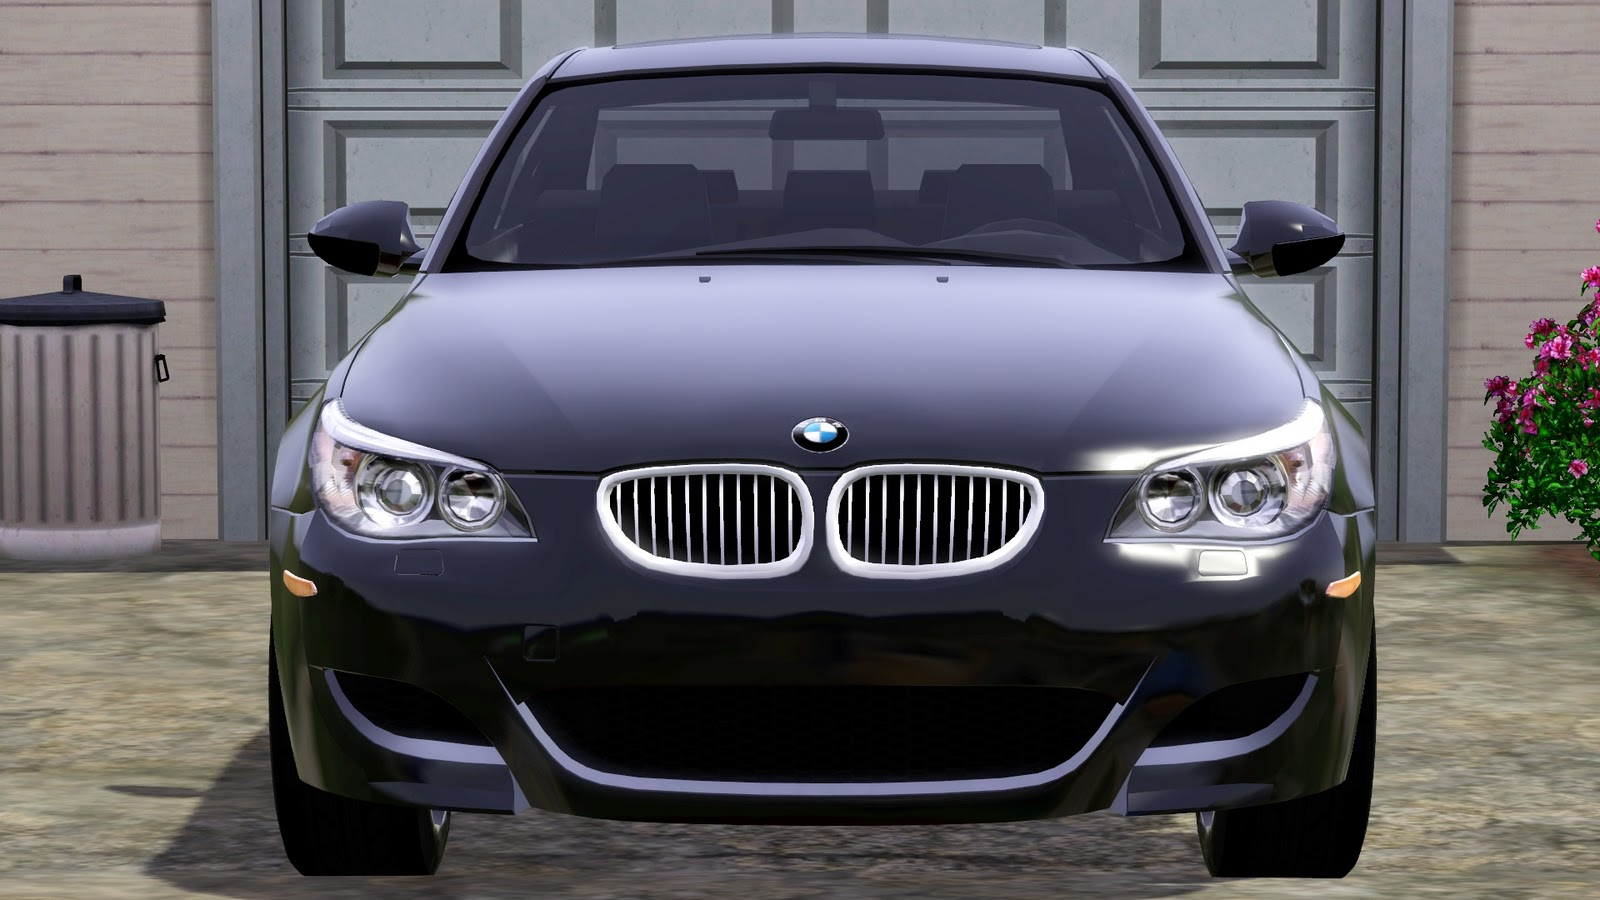 my sims 3 blog 2009 bmw m5 by fresh prince. Black Bedroom Furniture Sets. Home Design Ideas